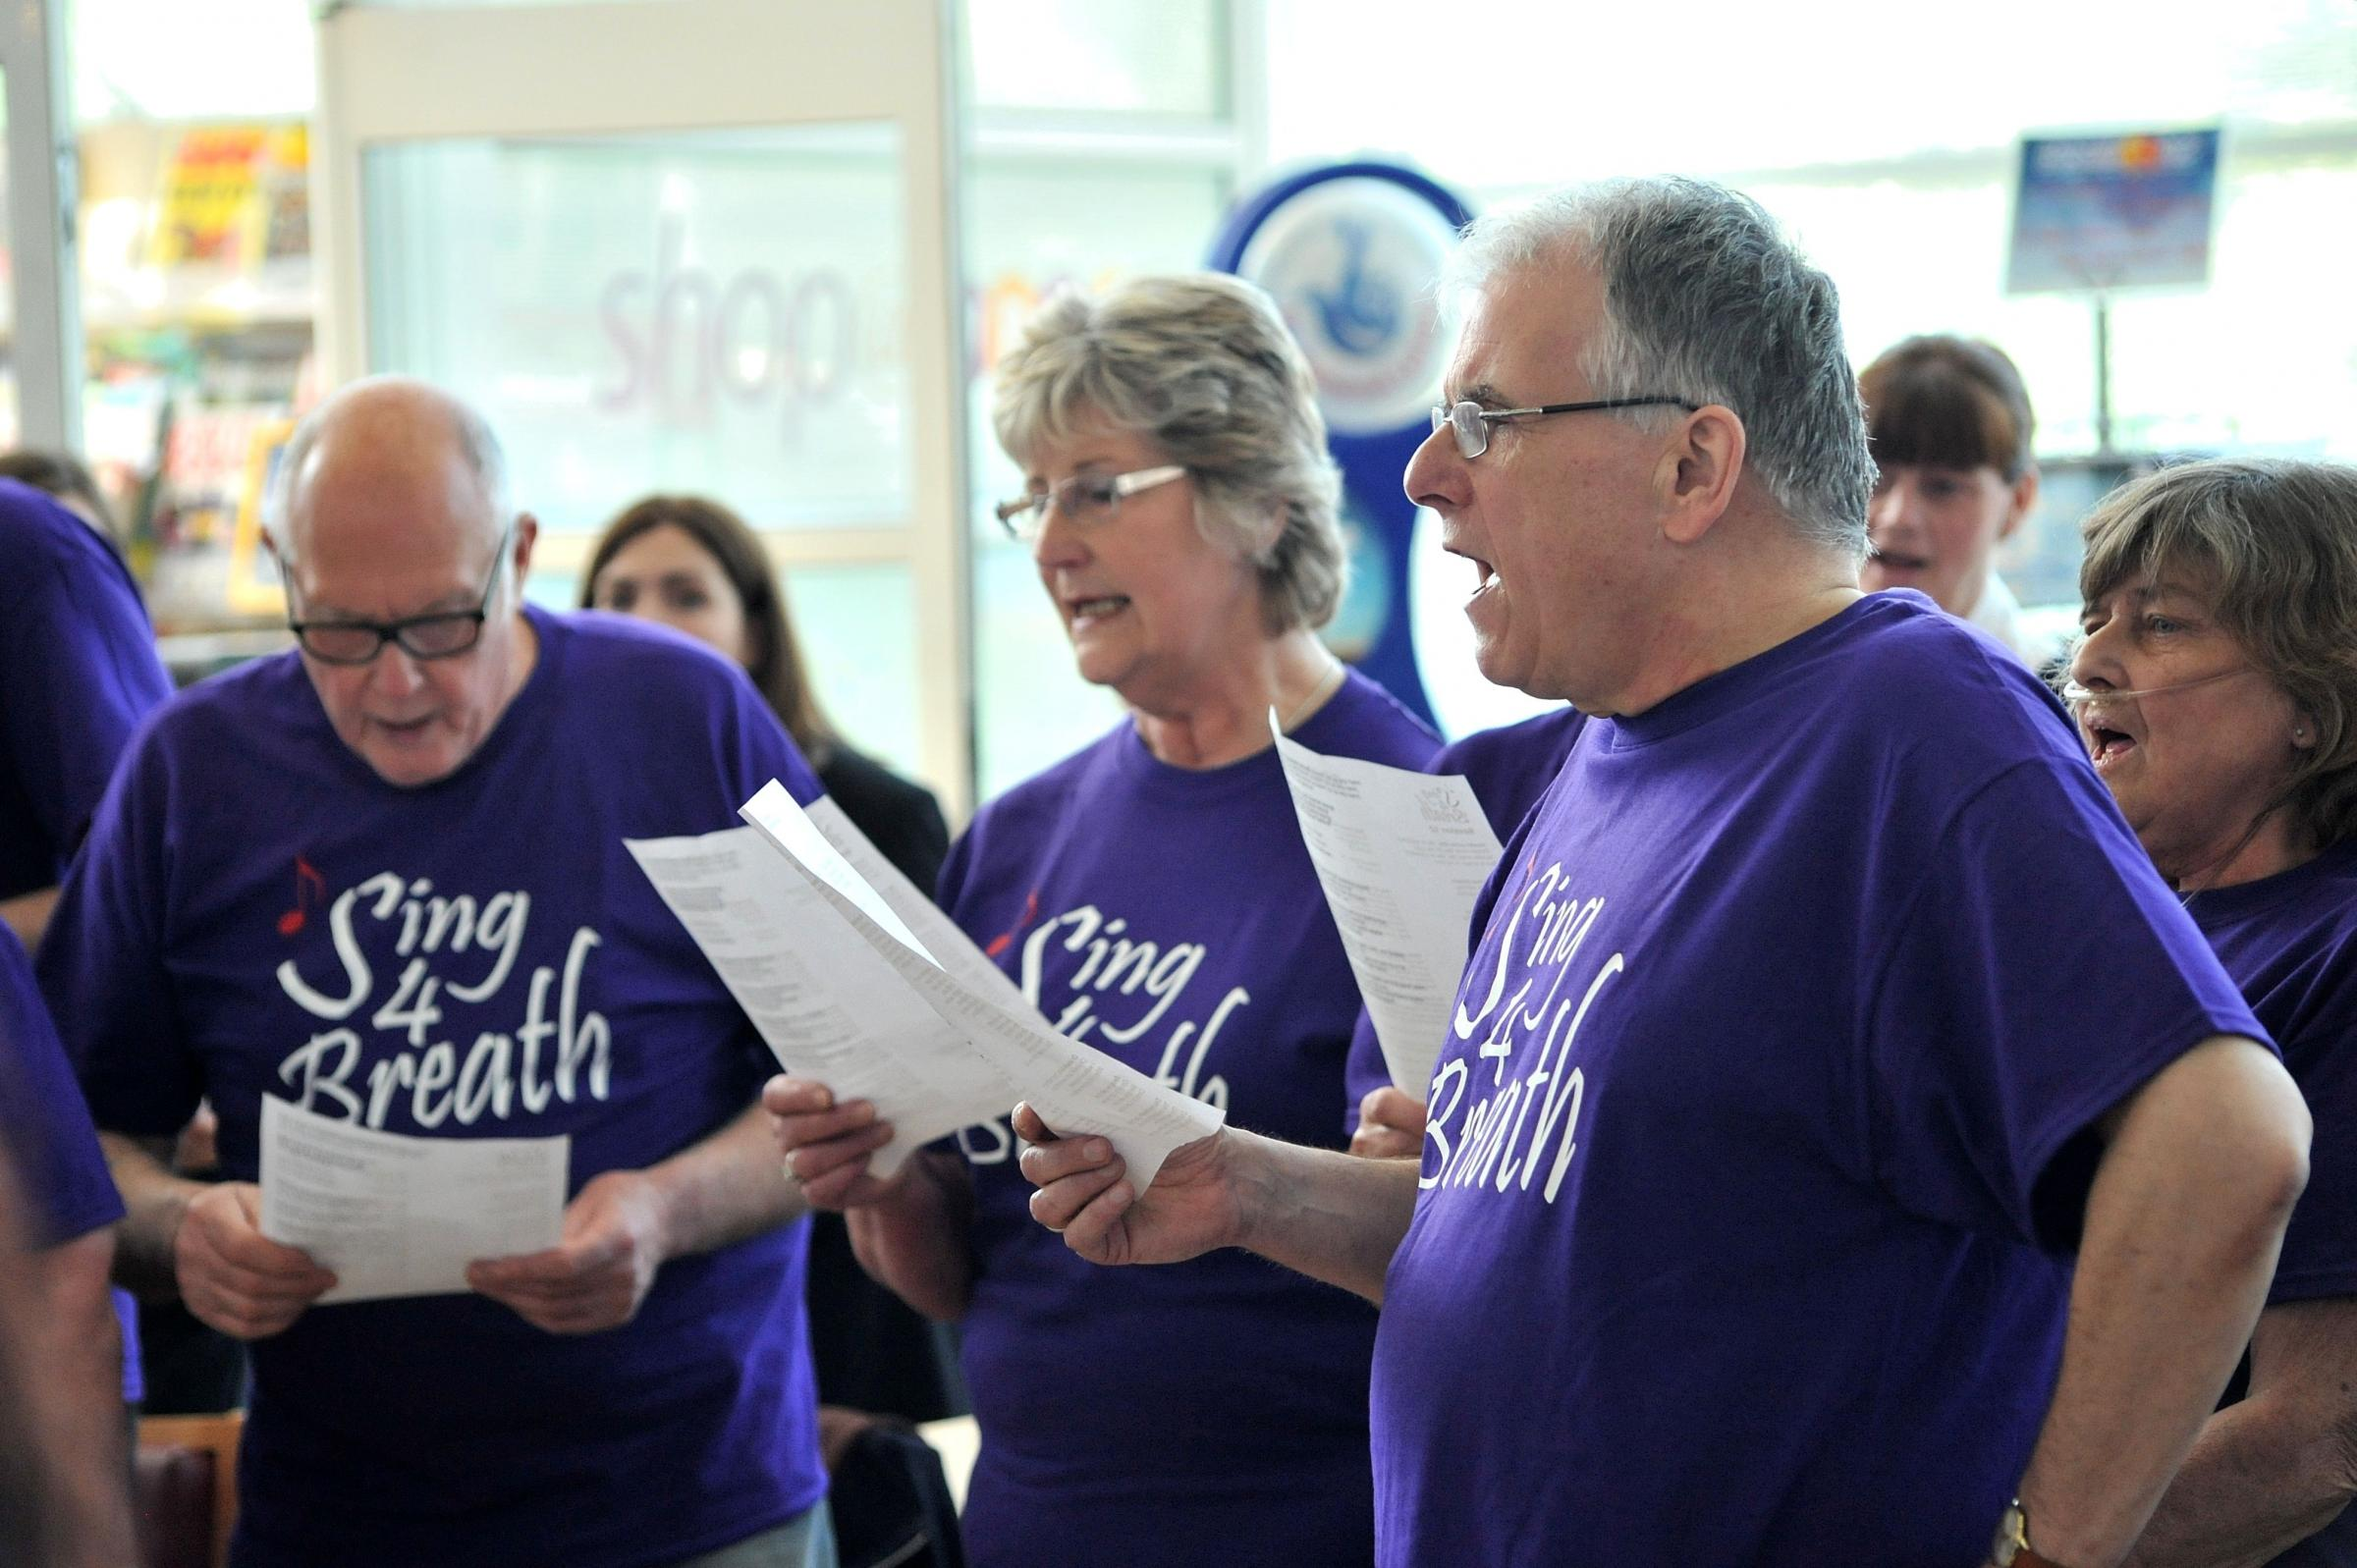 Breathing choir in fine voice at hospital performance